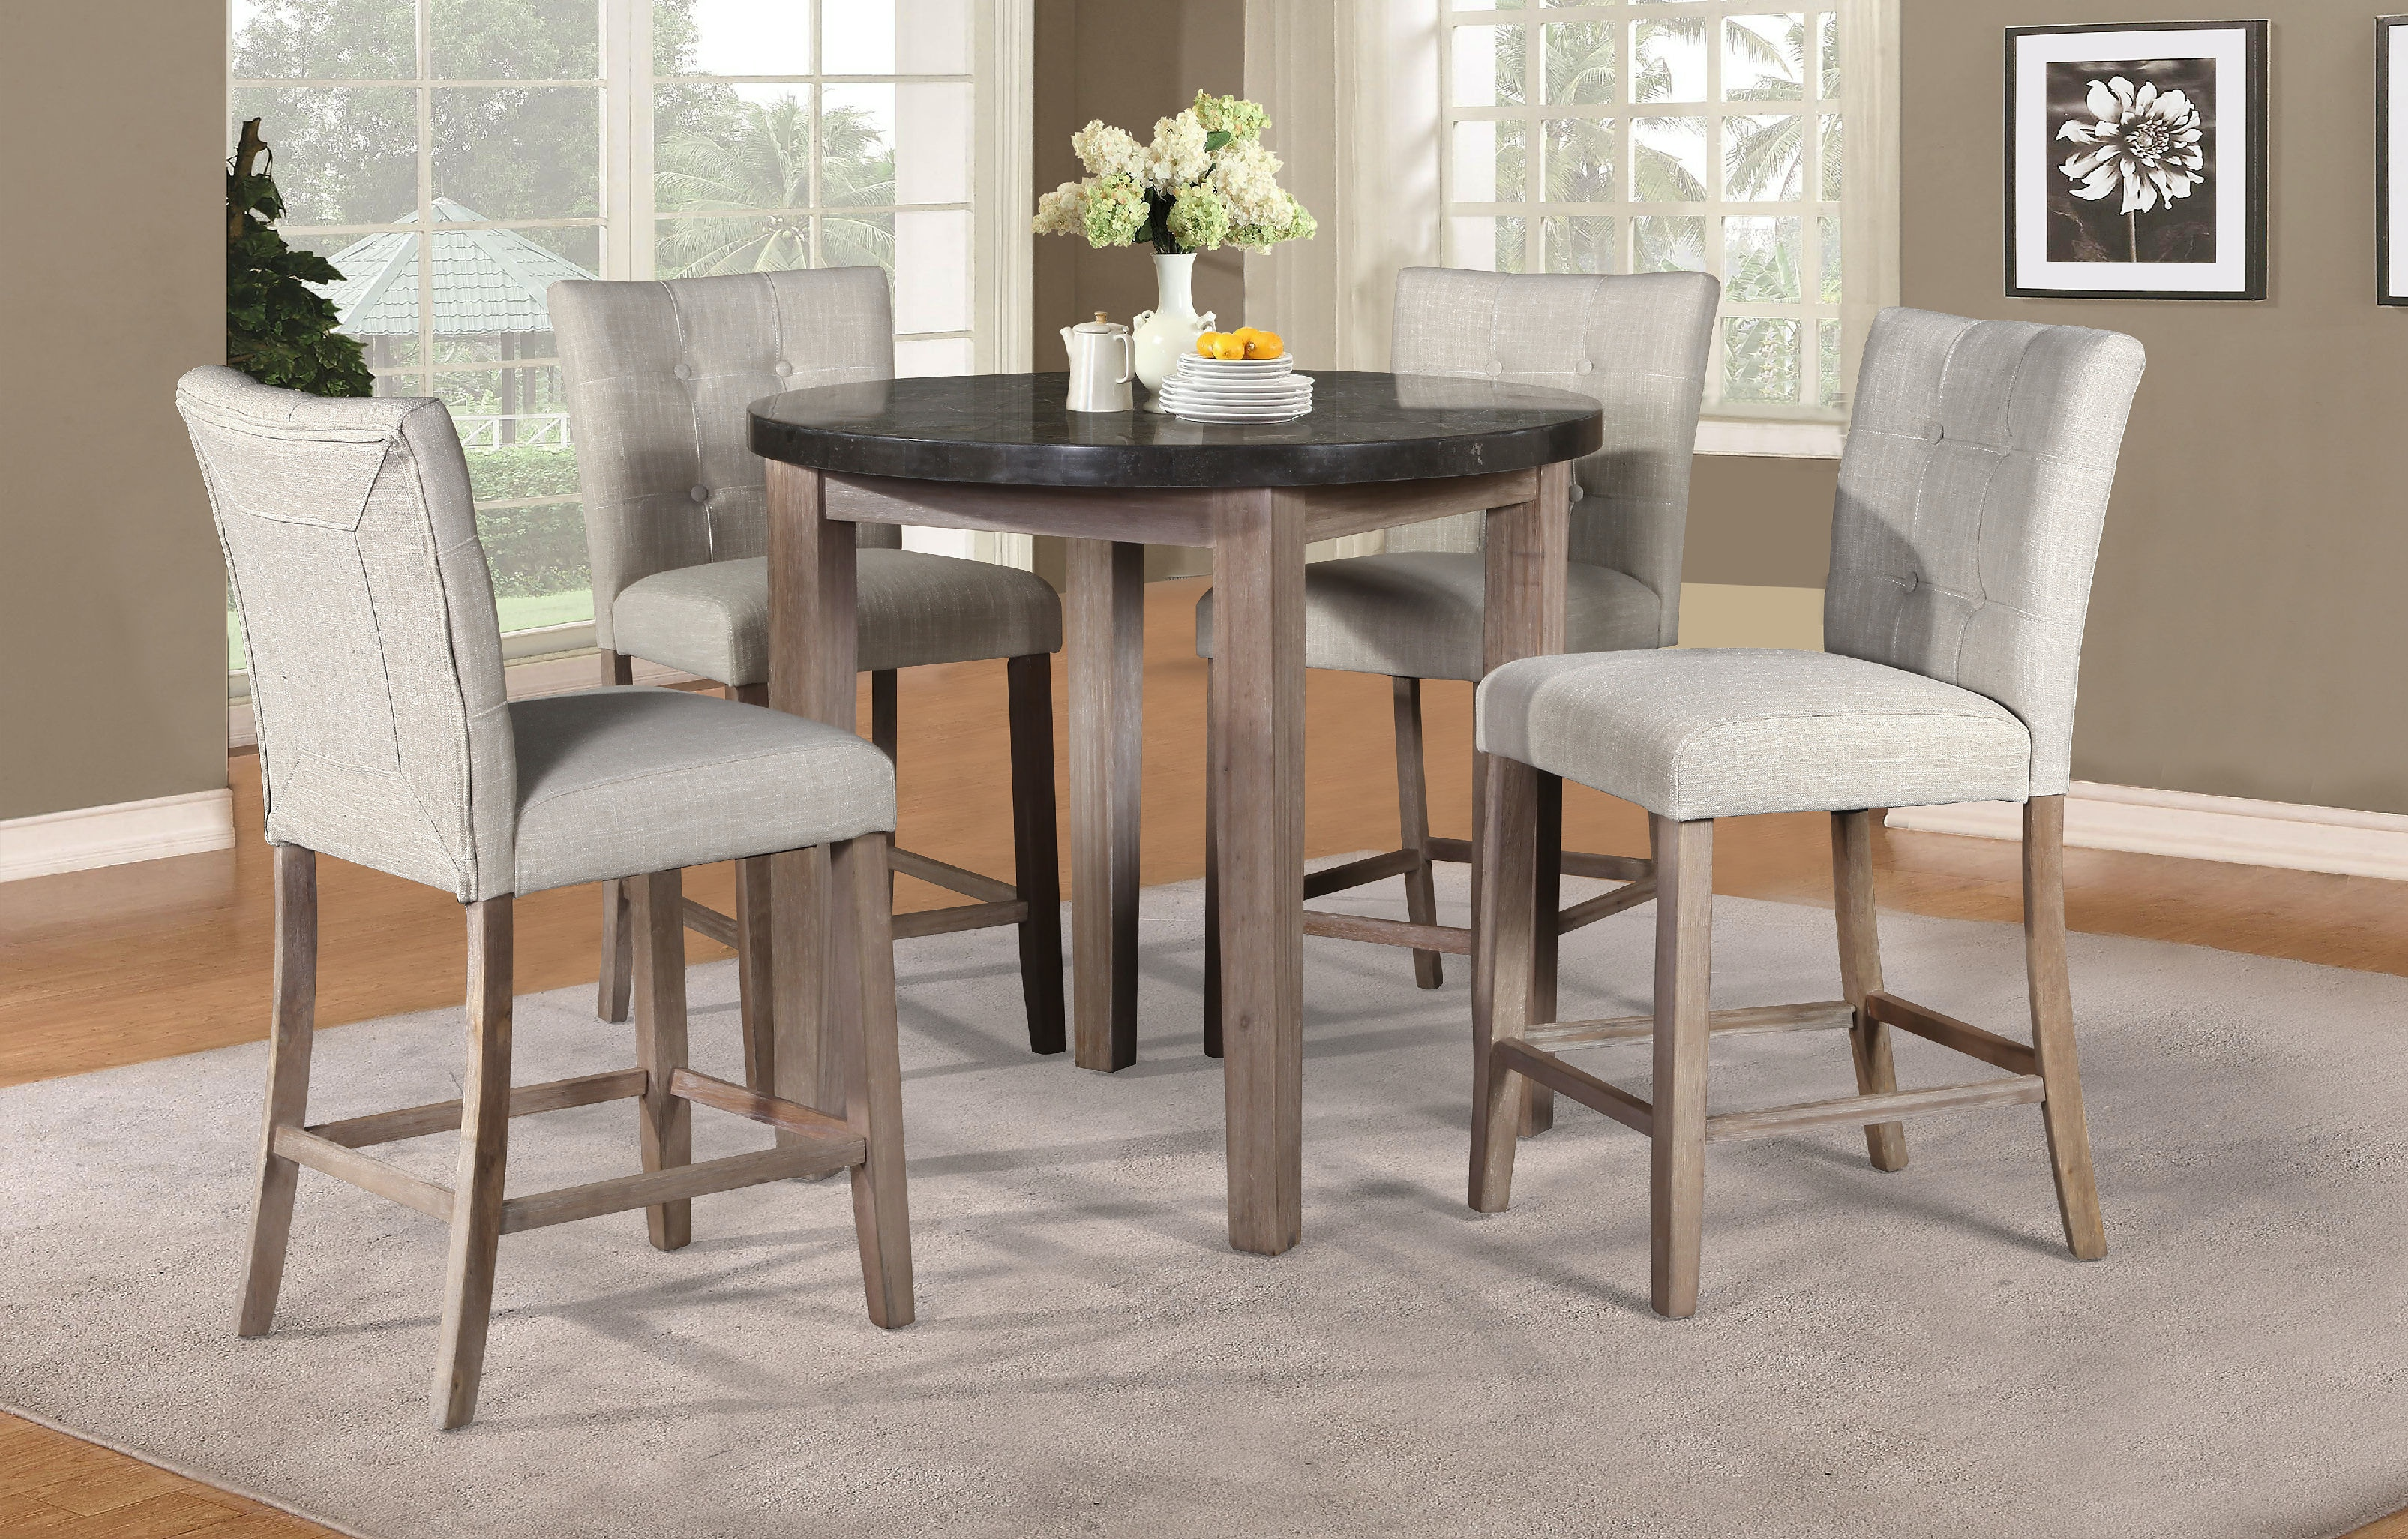 elements international dining room bluestone marble round